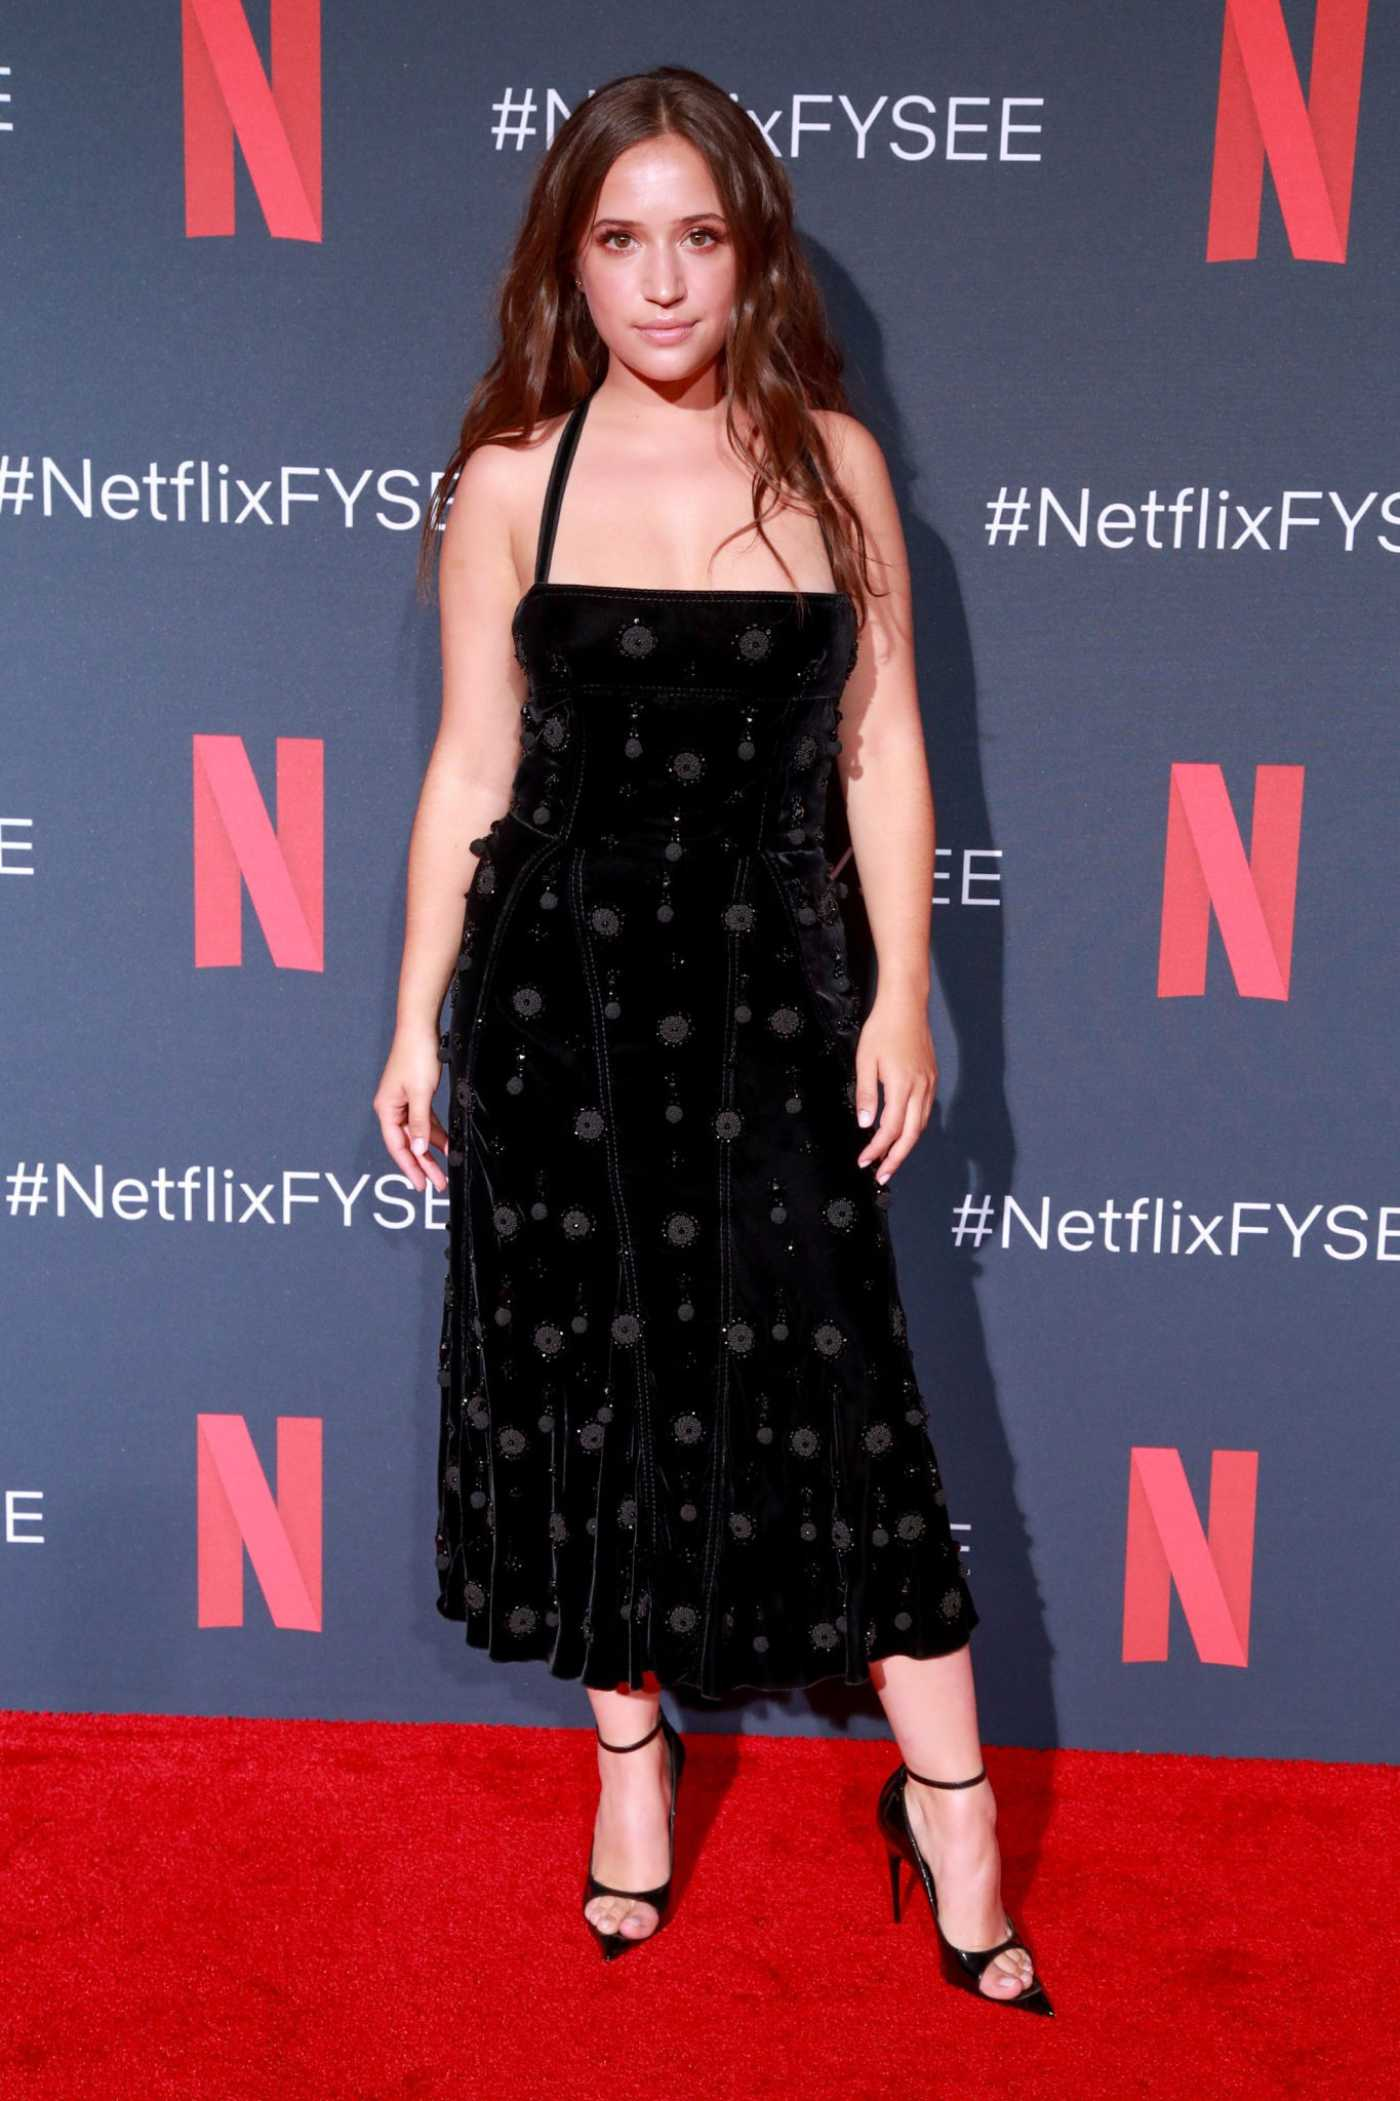 Gideon Adlon Attends Netflix FYC Event: Prom Night Photocall in Los Angeles 05/17/2019